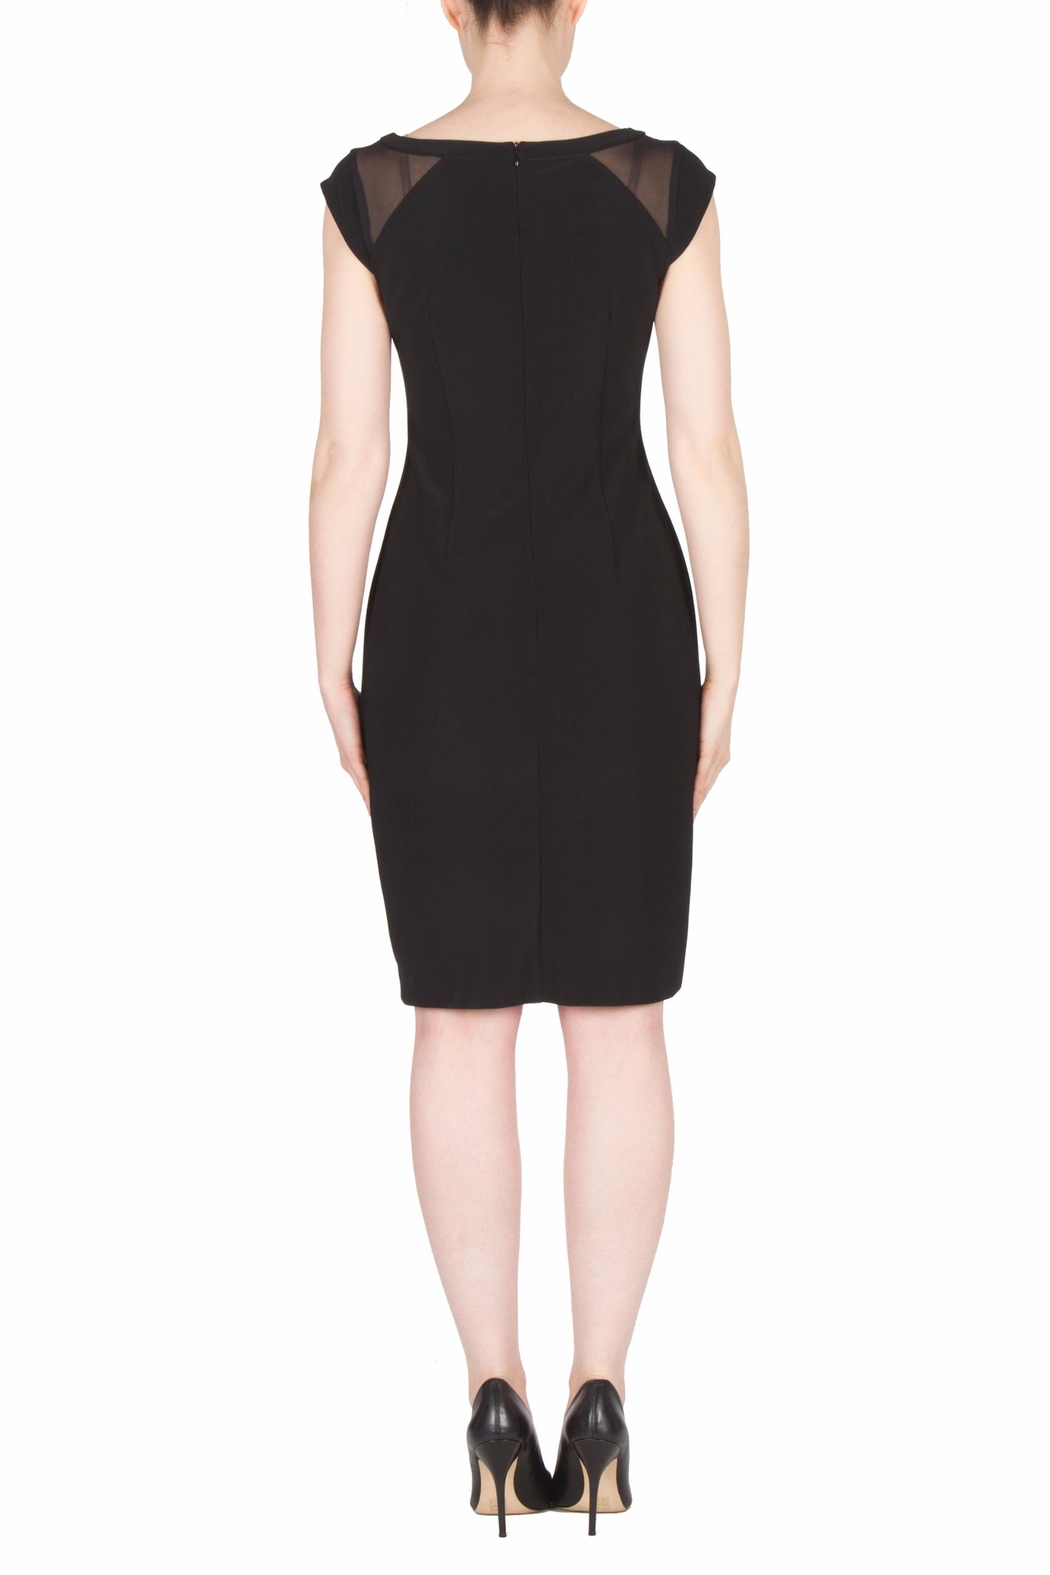 Joseph Ribkoff Samantha Dress - Side Cropped Image